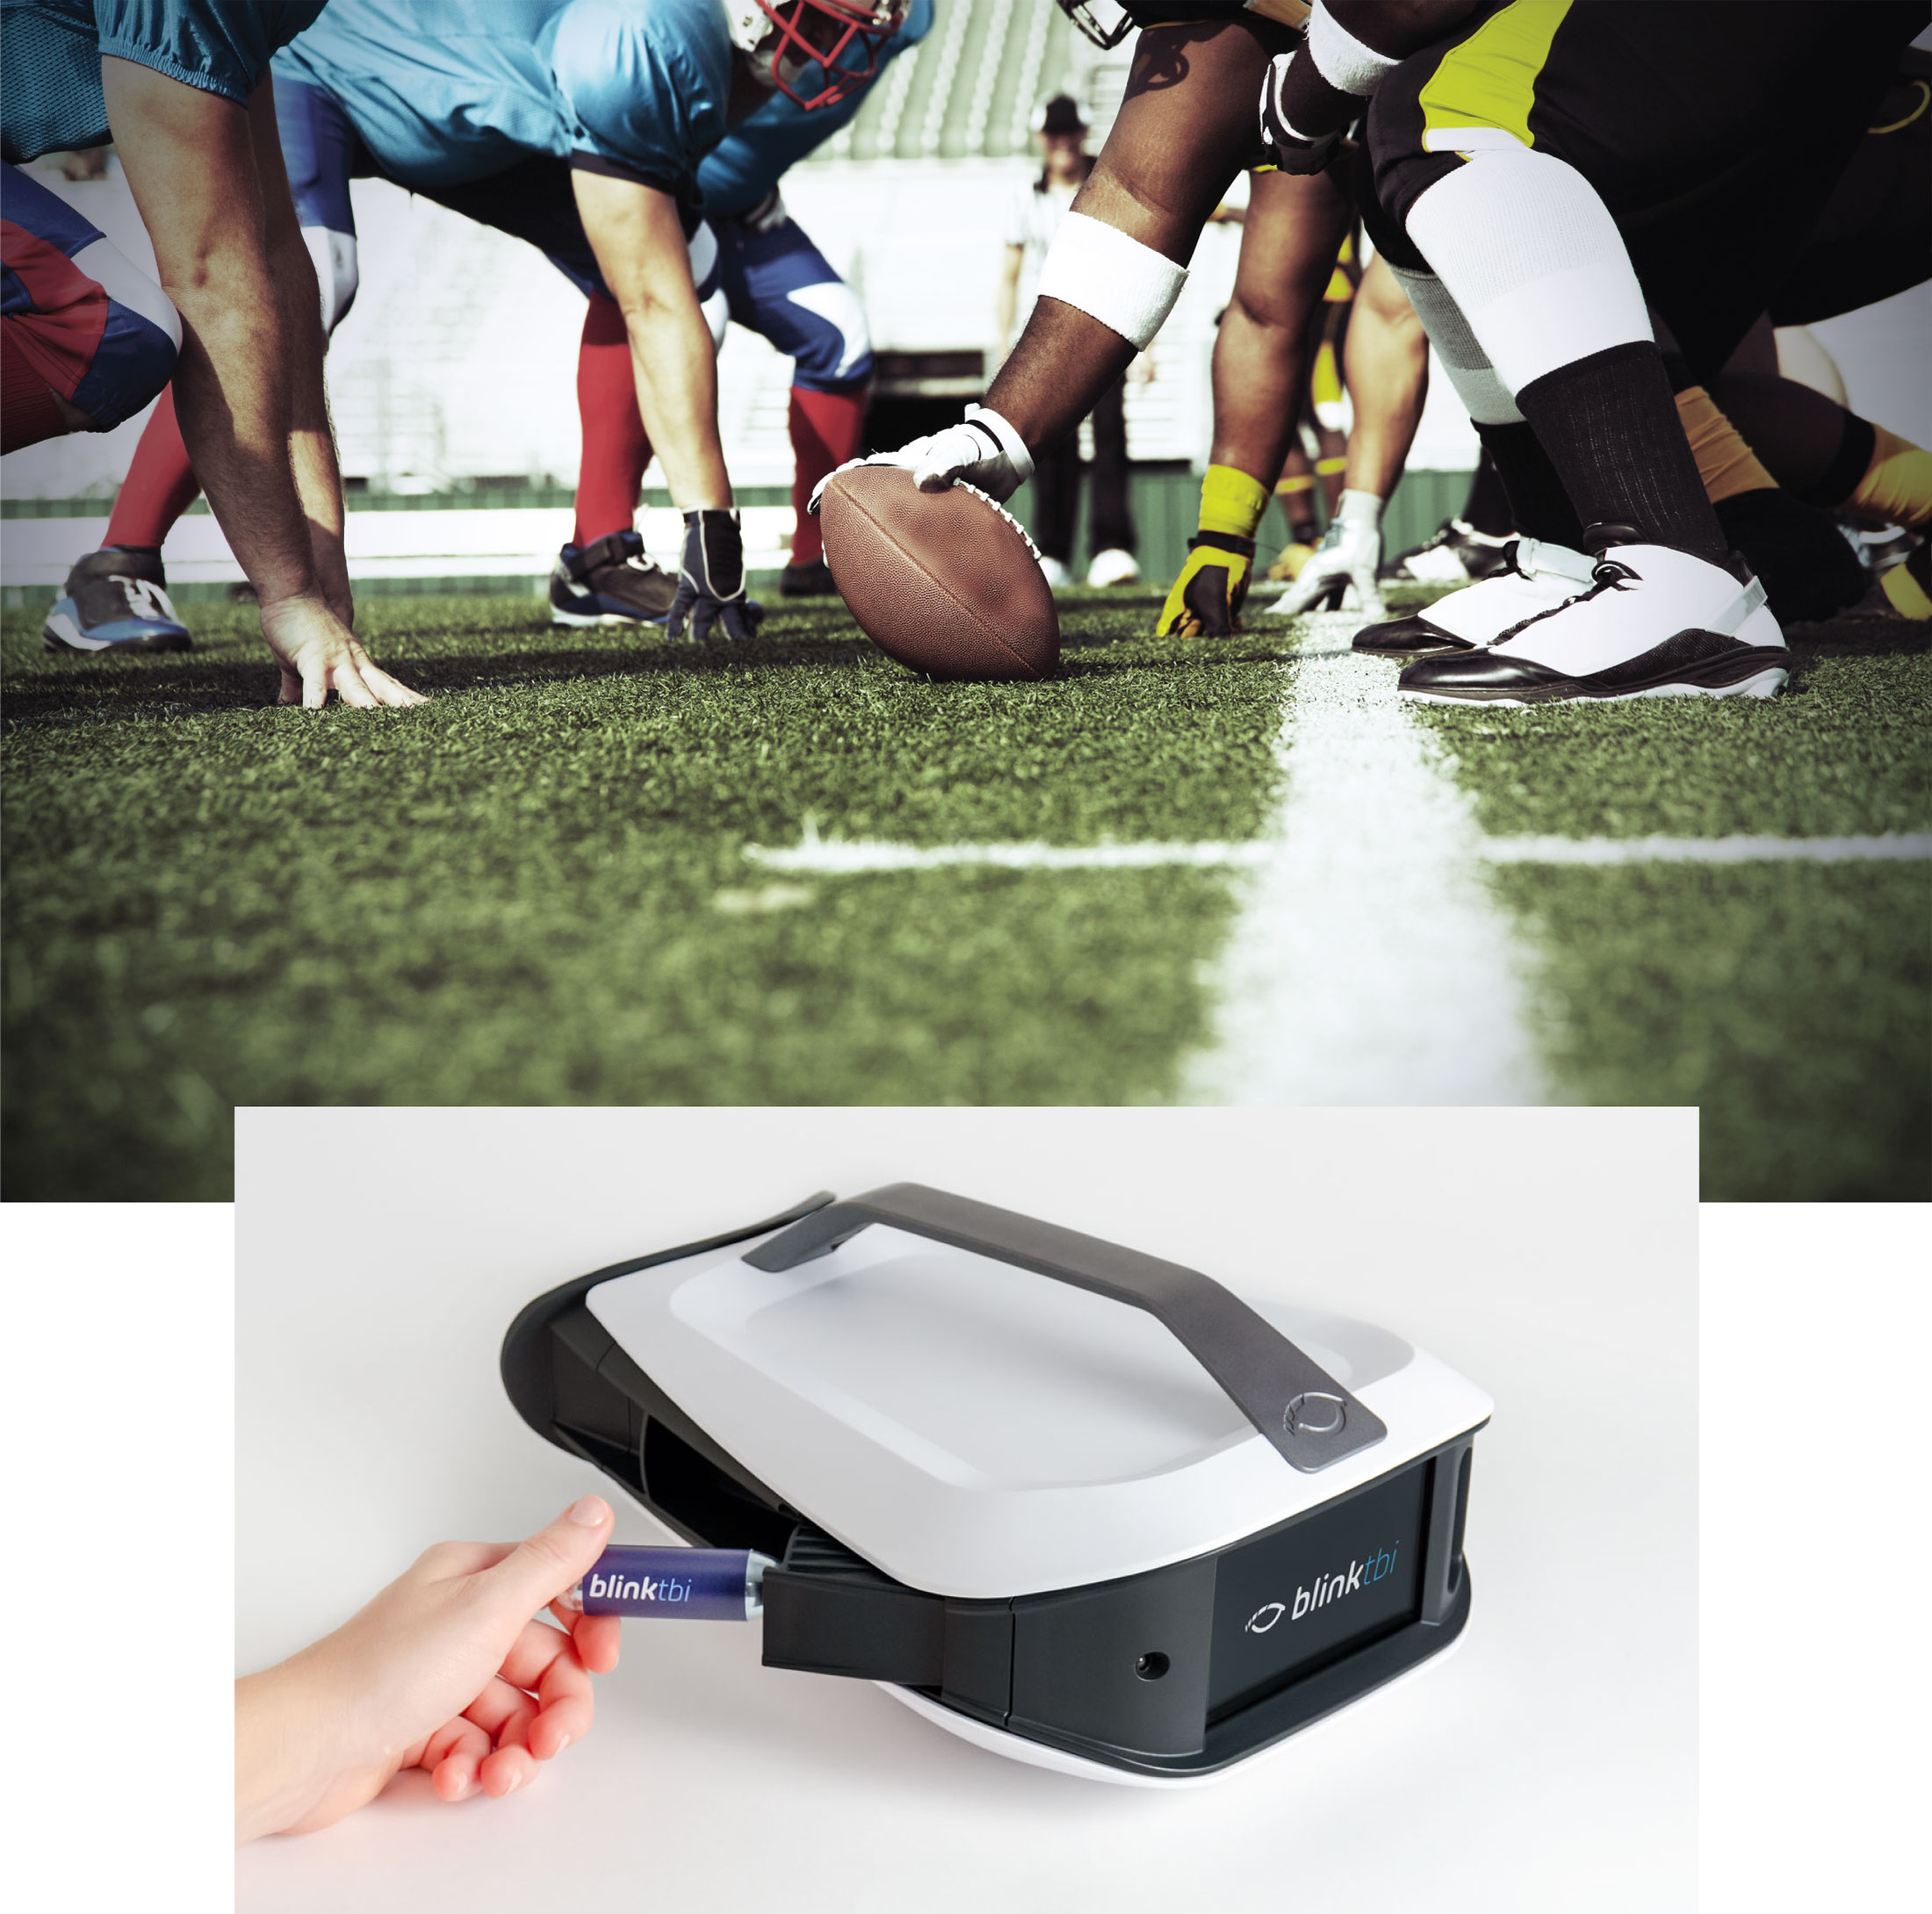 image of football players and blink eyestat with air cartridge in view